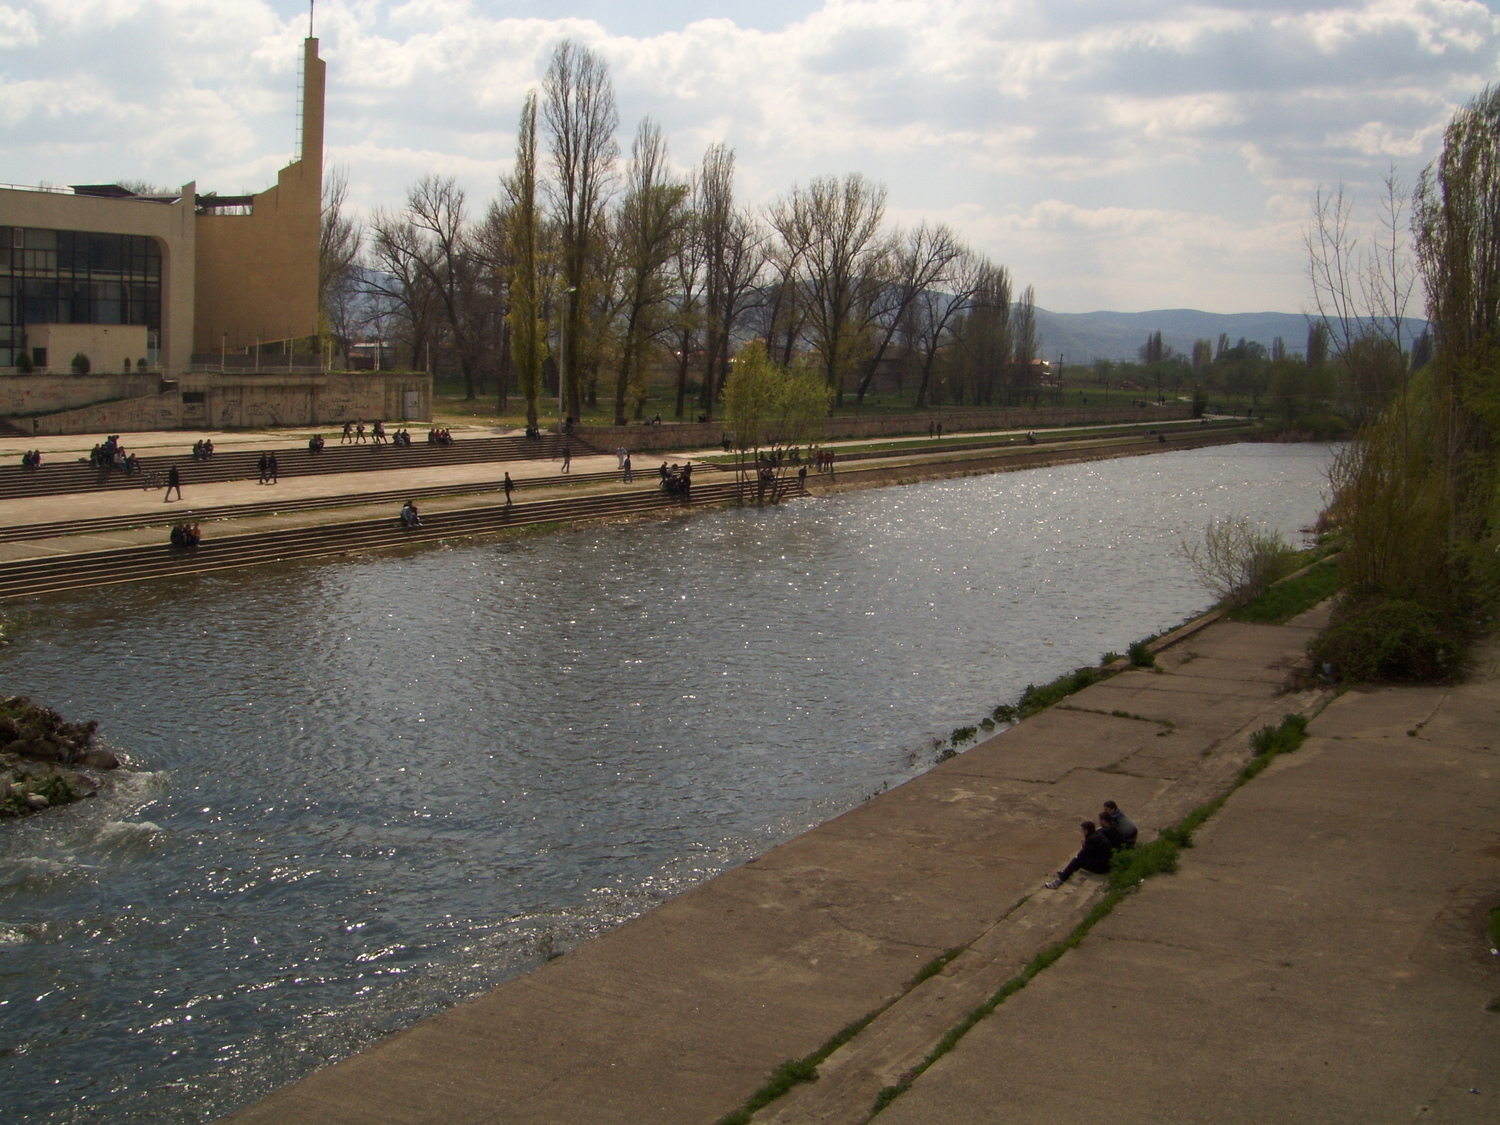 The Ibar river in Mitrovica acts as a wall between two communities